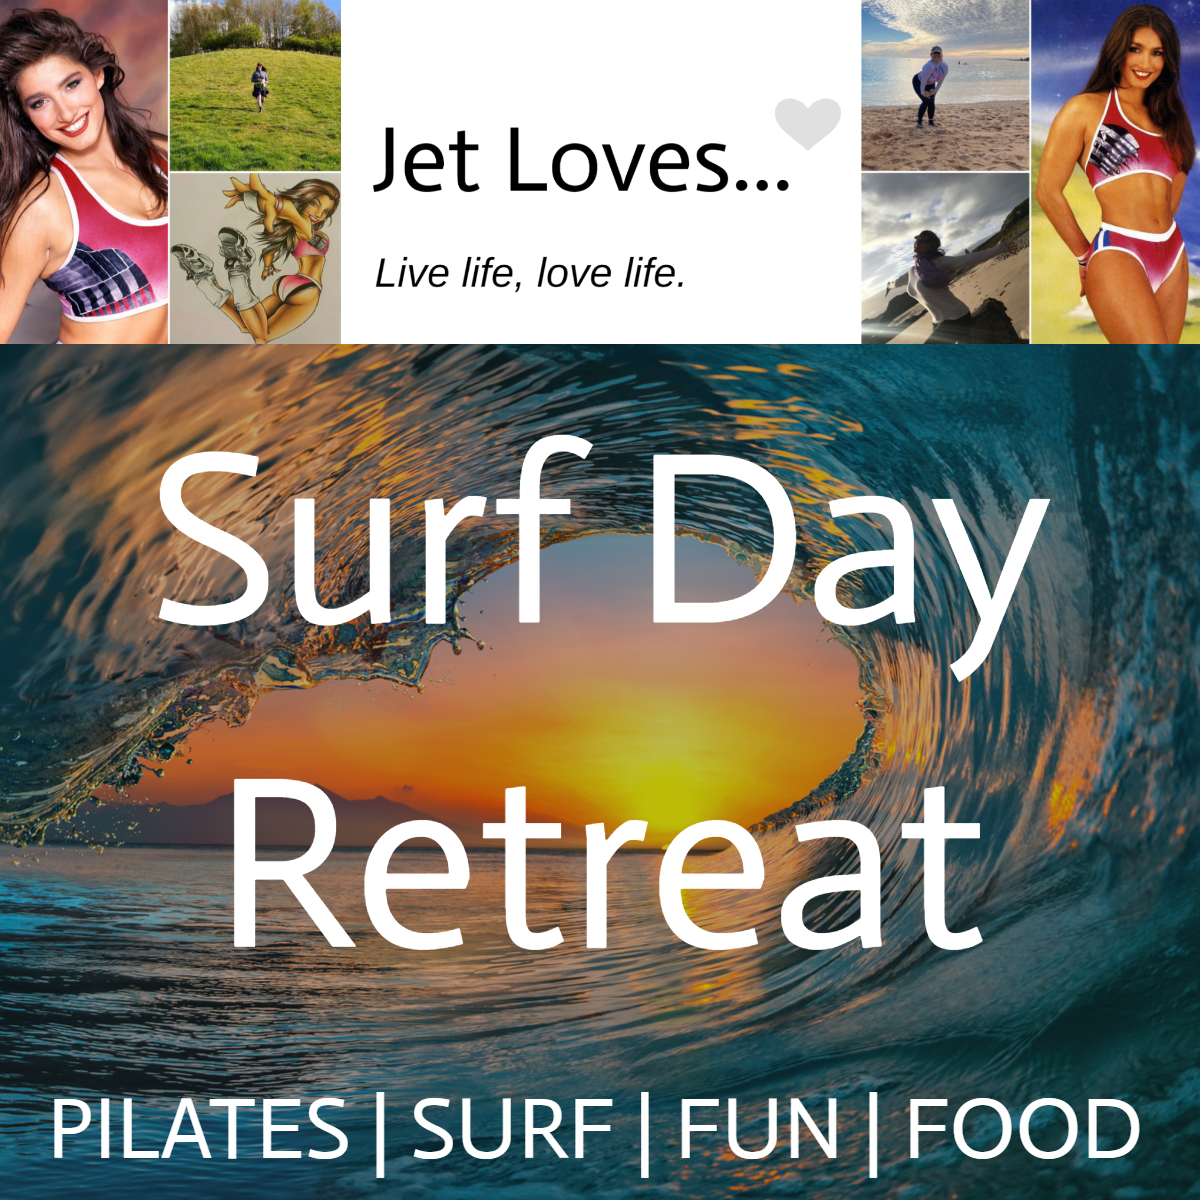 Women Together Surf Day Retreat